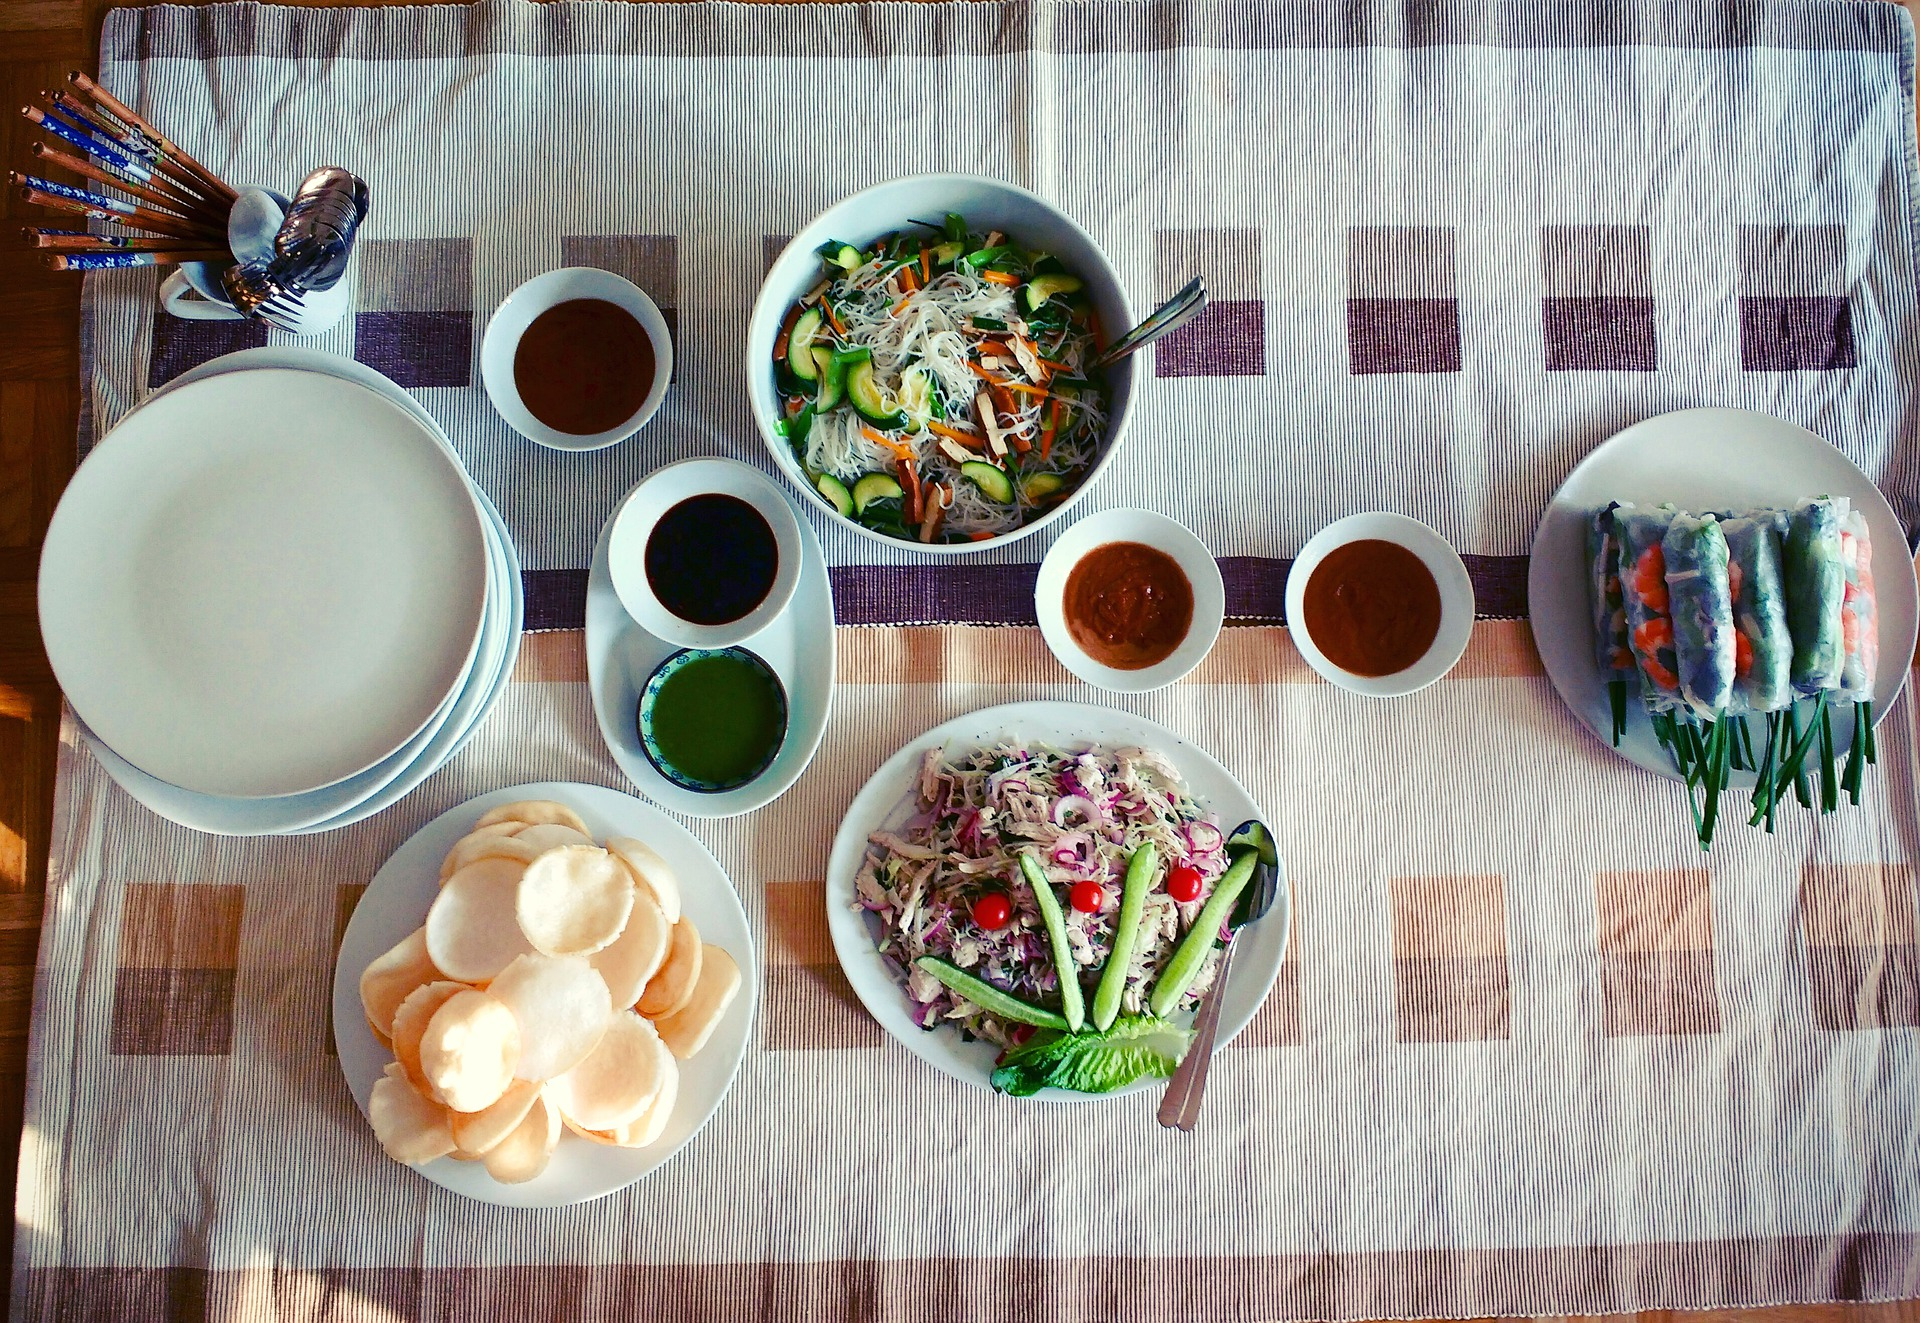 vietnam-food-table-3070514_1920-pixabay.jpg